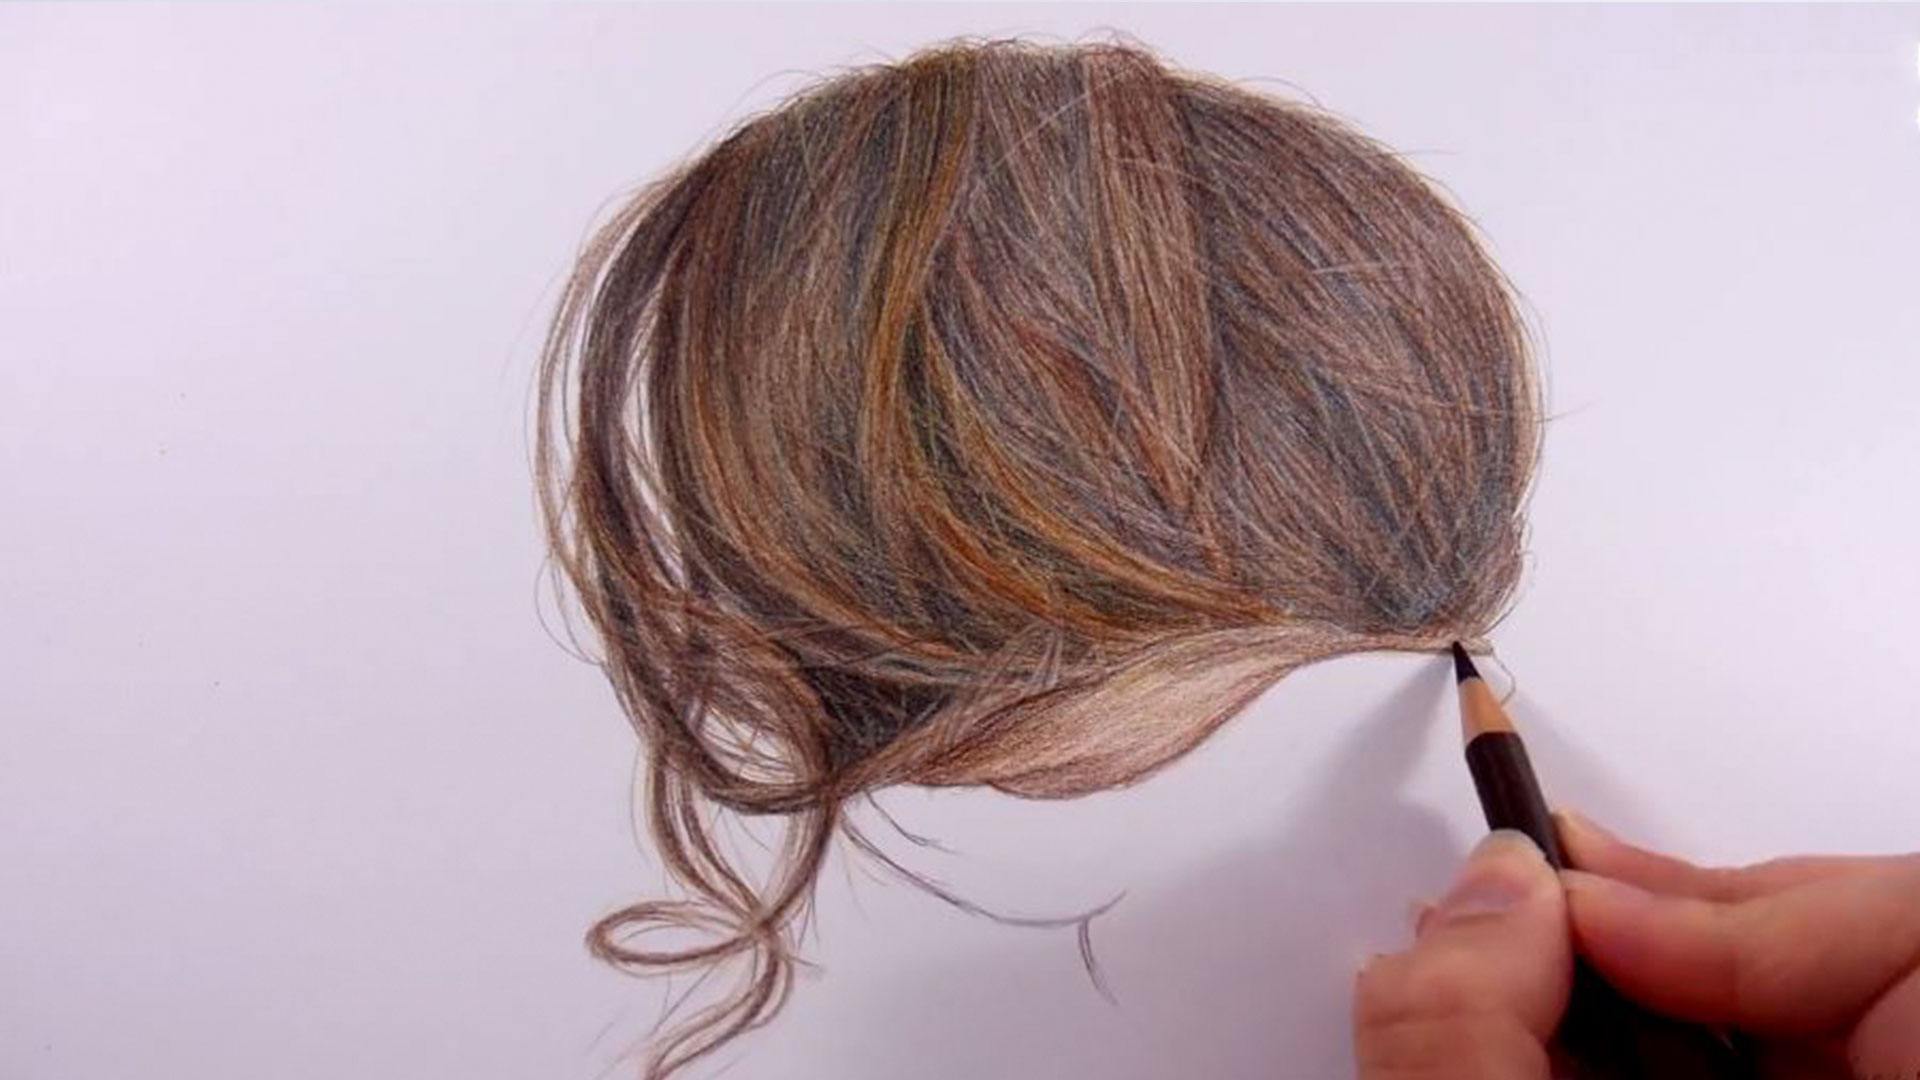 Unbelievably Realistic Hair Drawn Using 8 Colored Pencils | Bored Panda